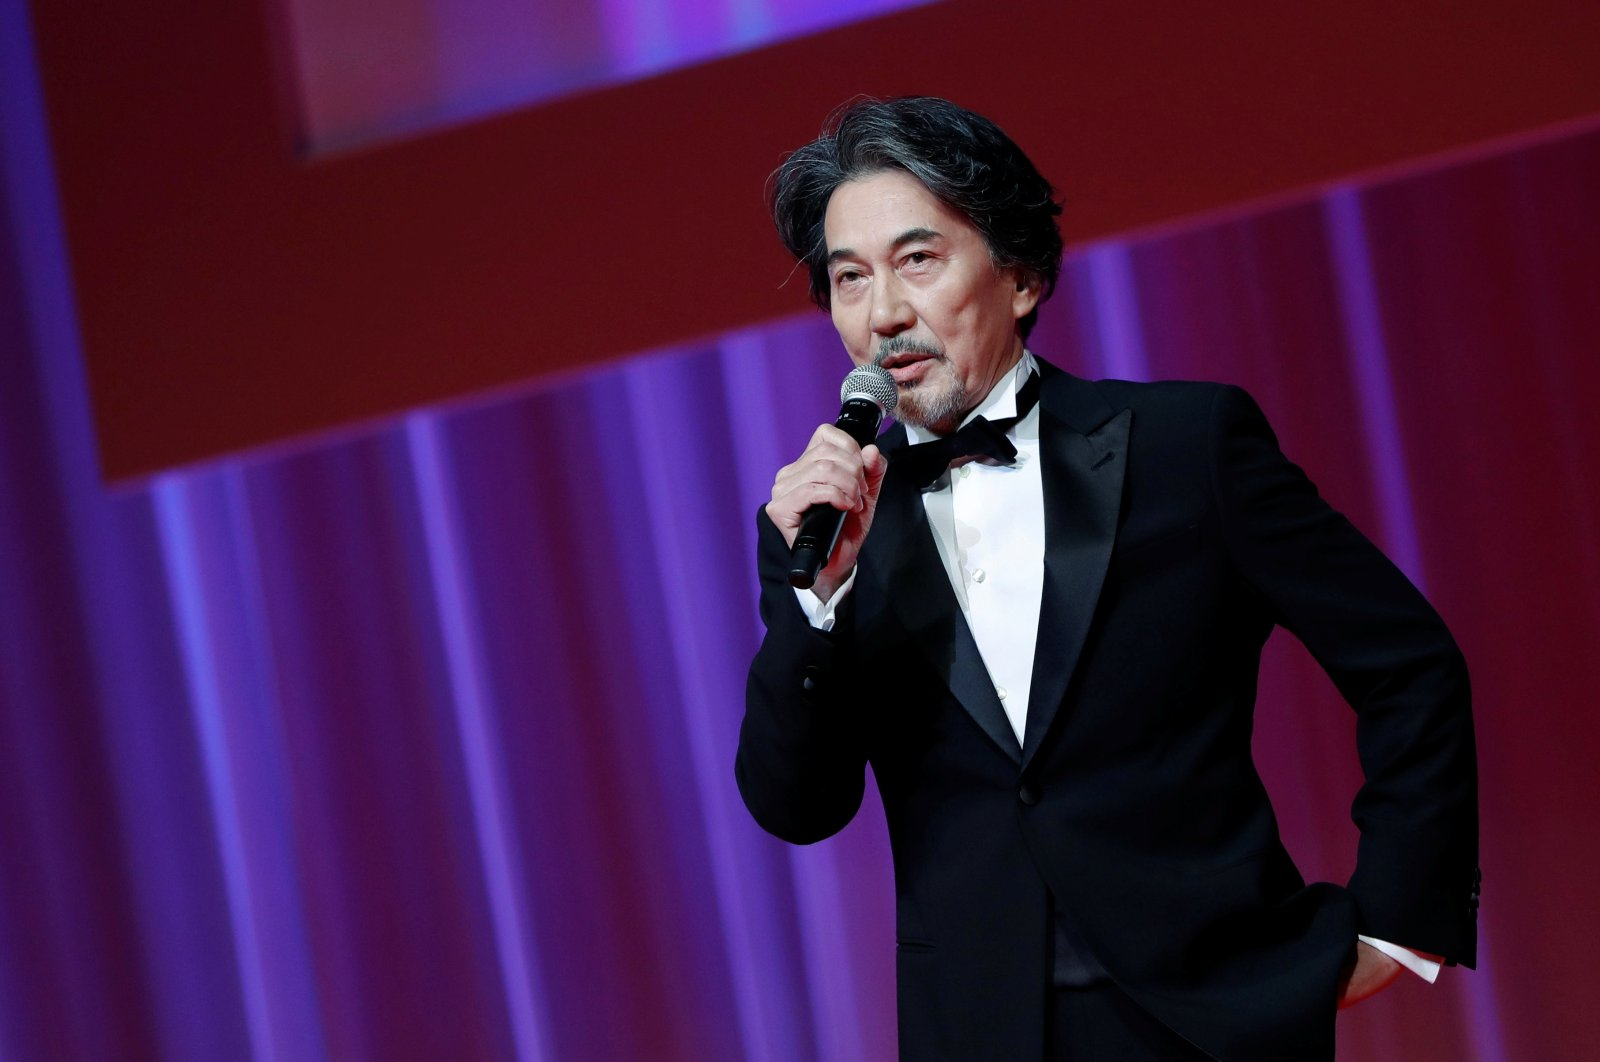 Actor and the 33rd Tokyo International Film Festival ambassador Koji Yakusho delivers a speech during the opening ceremony of the festival, amid the coronavirus disease outbreak, in Tokyo, Japan on Oct. 31, 2020. (Reuters Photo)